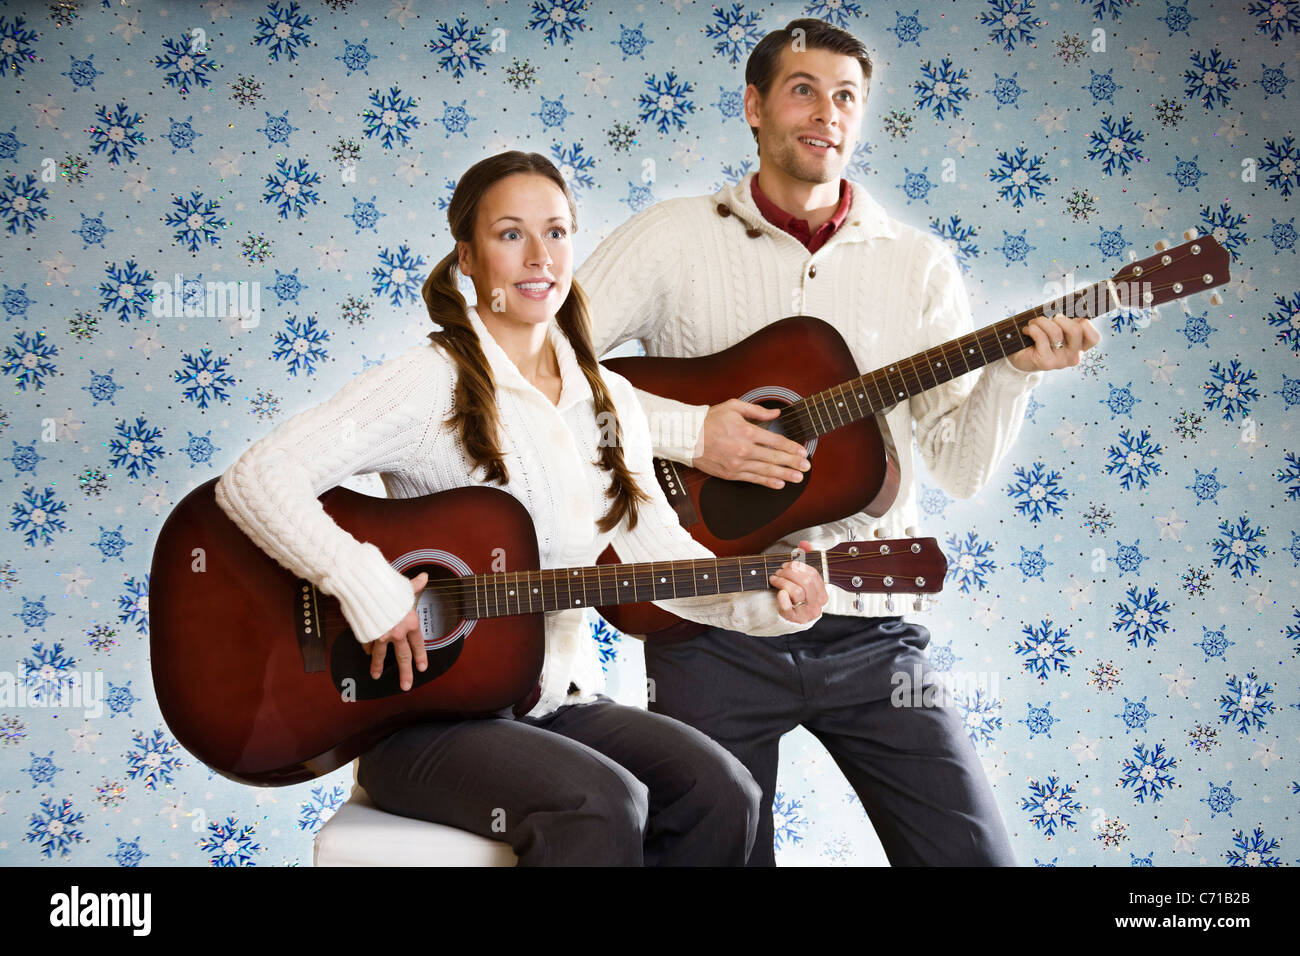 A mock Christmas album cover features a humorous young couple holding guitars. - Stock Image